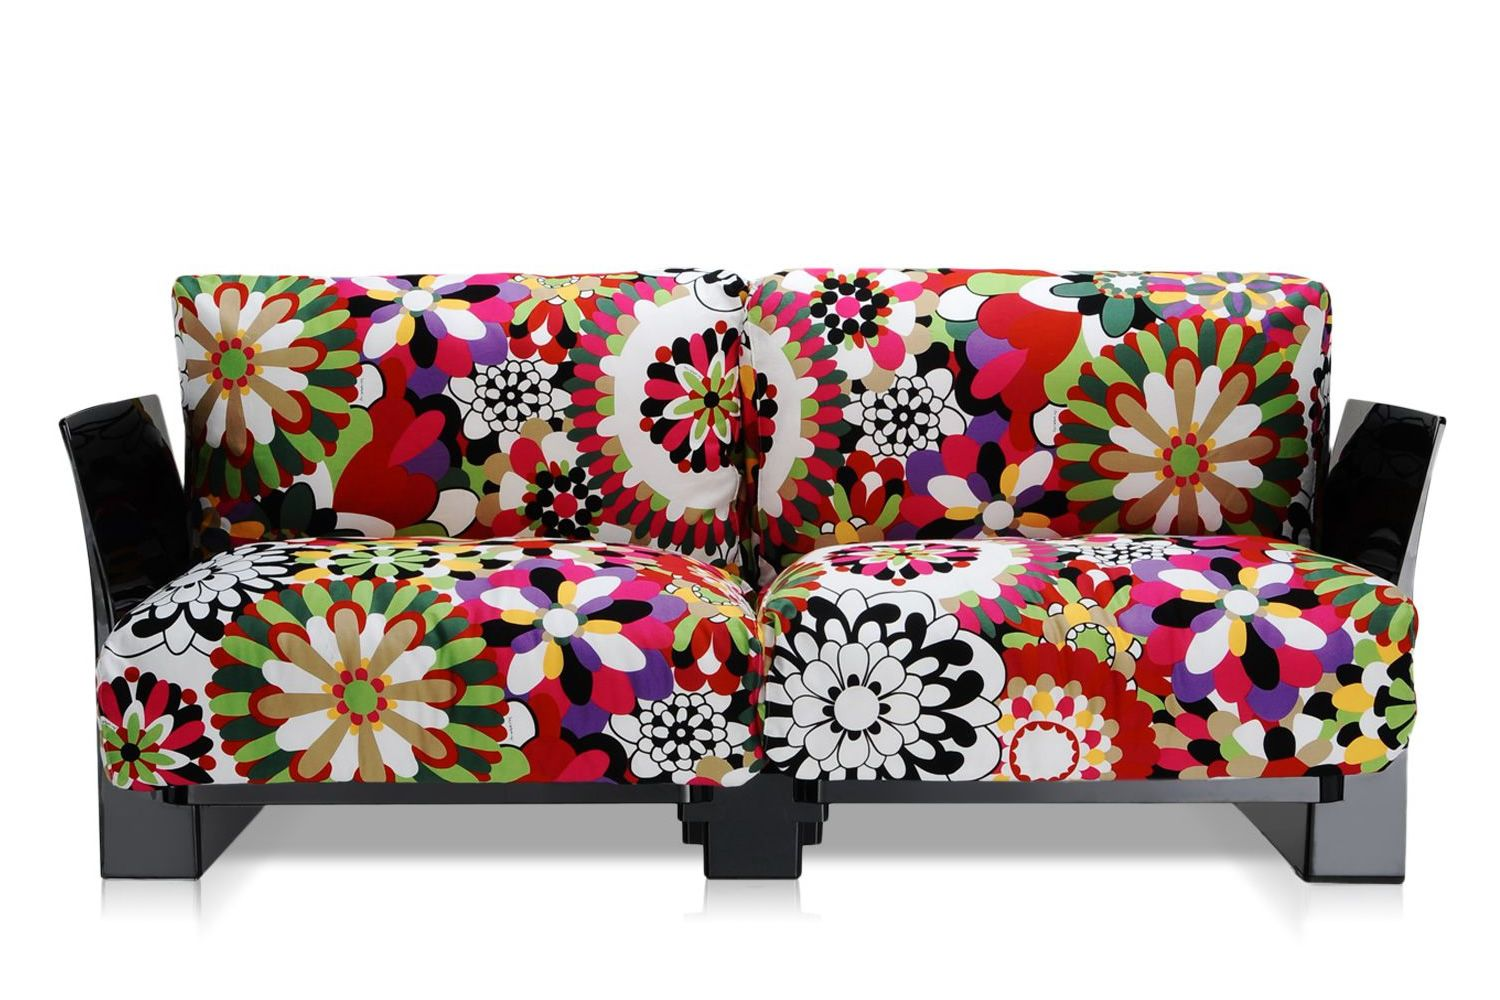 Pop Missoni Sofa 2 Seater With Black Polycarbonate Structure And Cushions Covered In Red